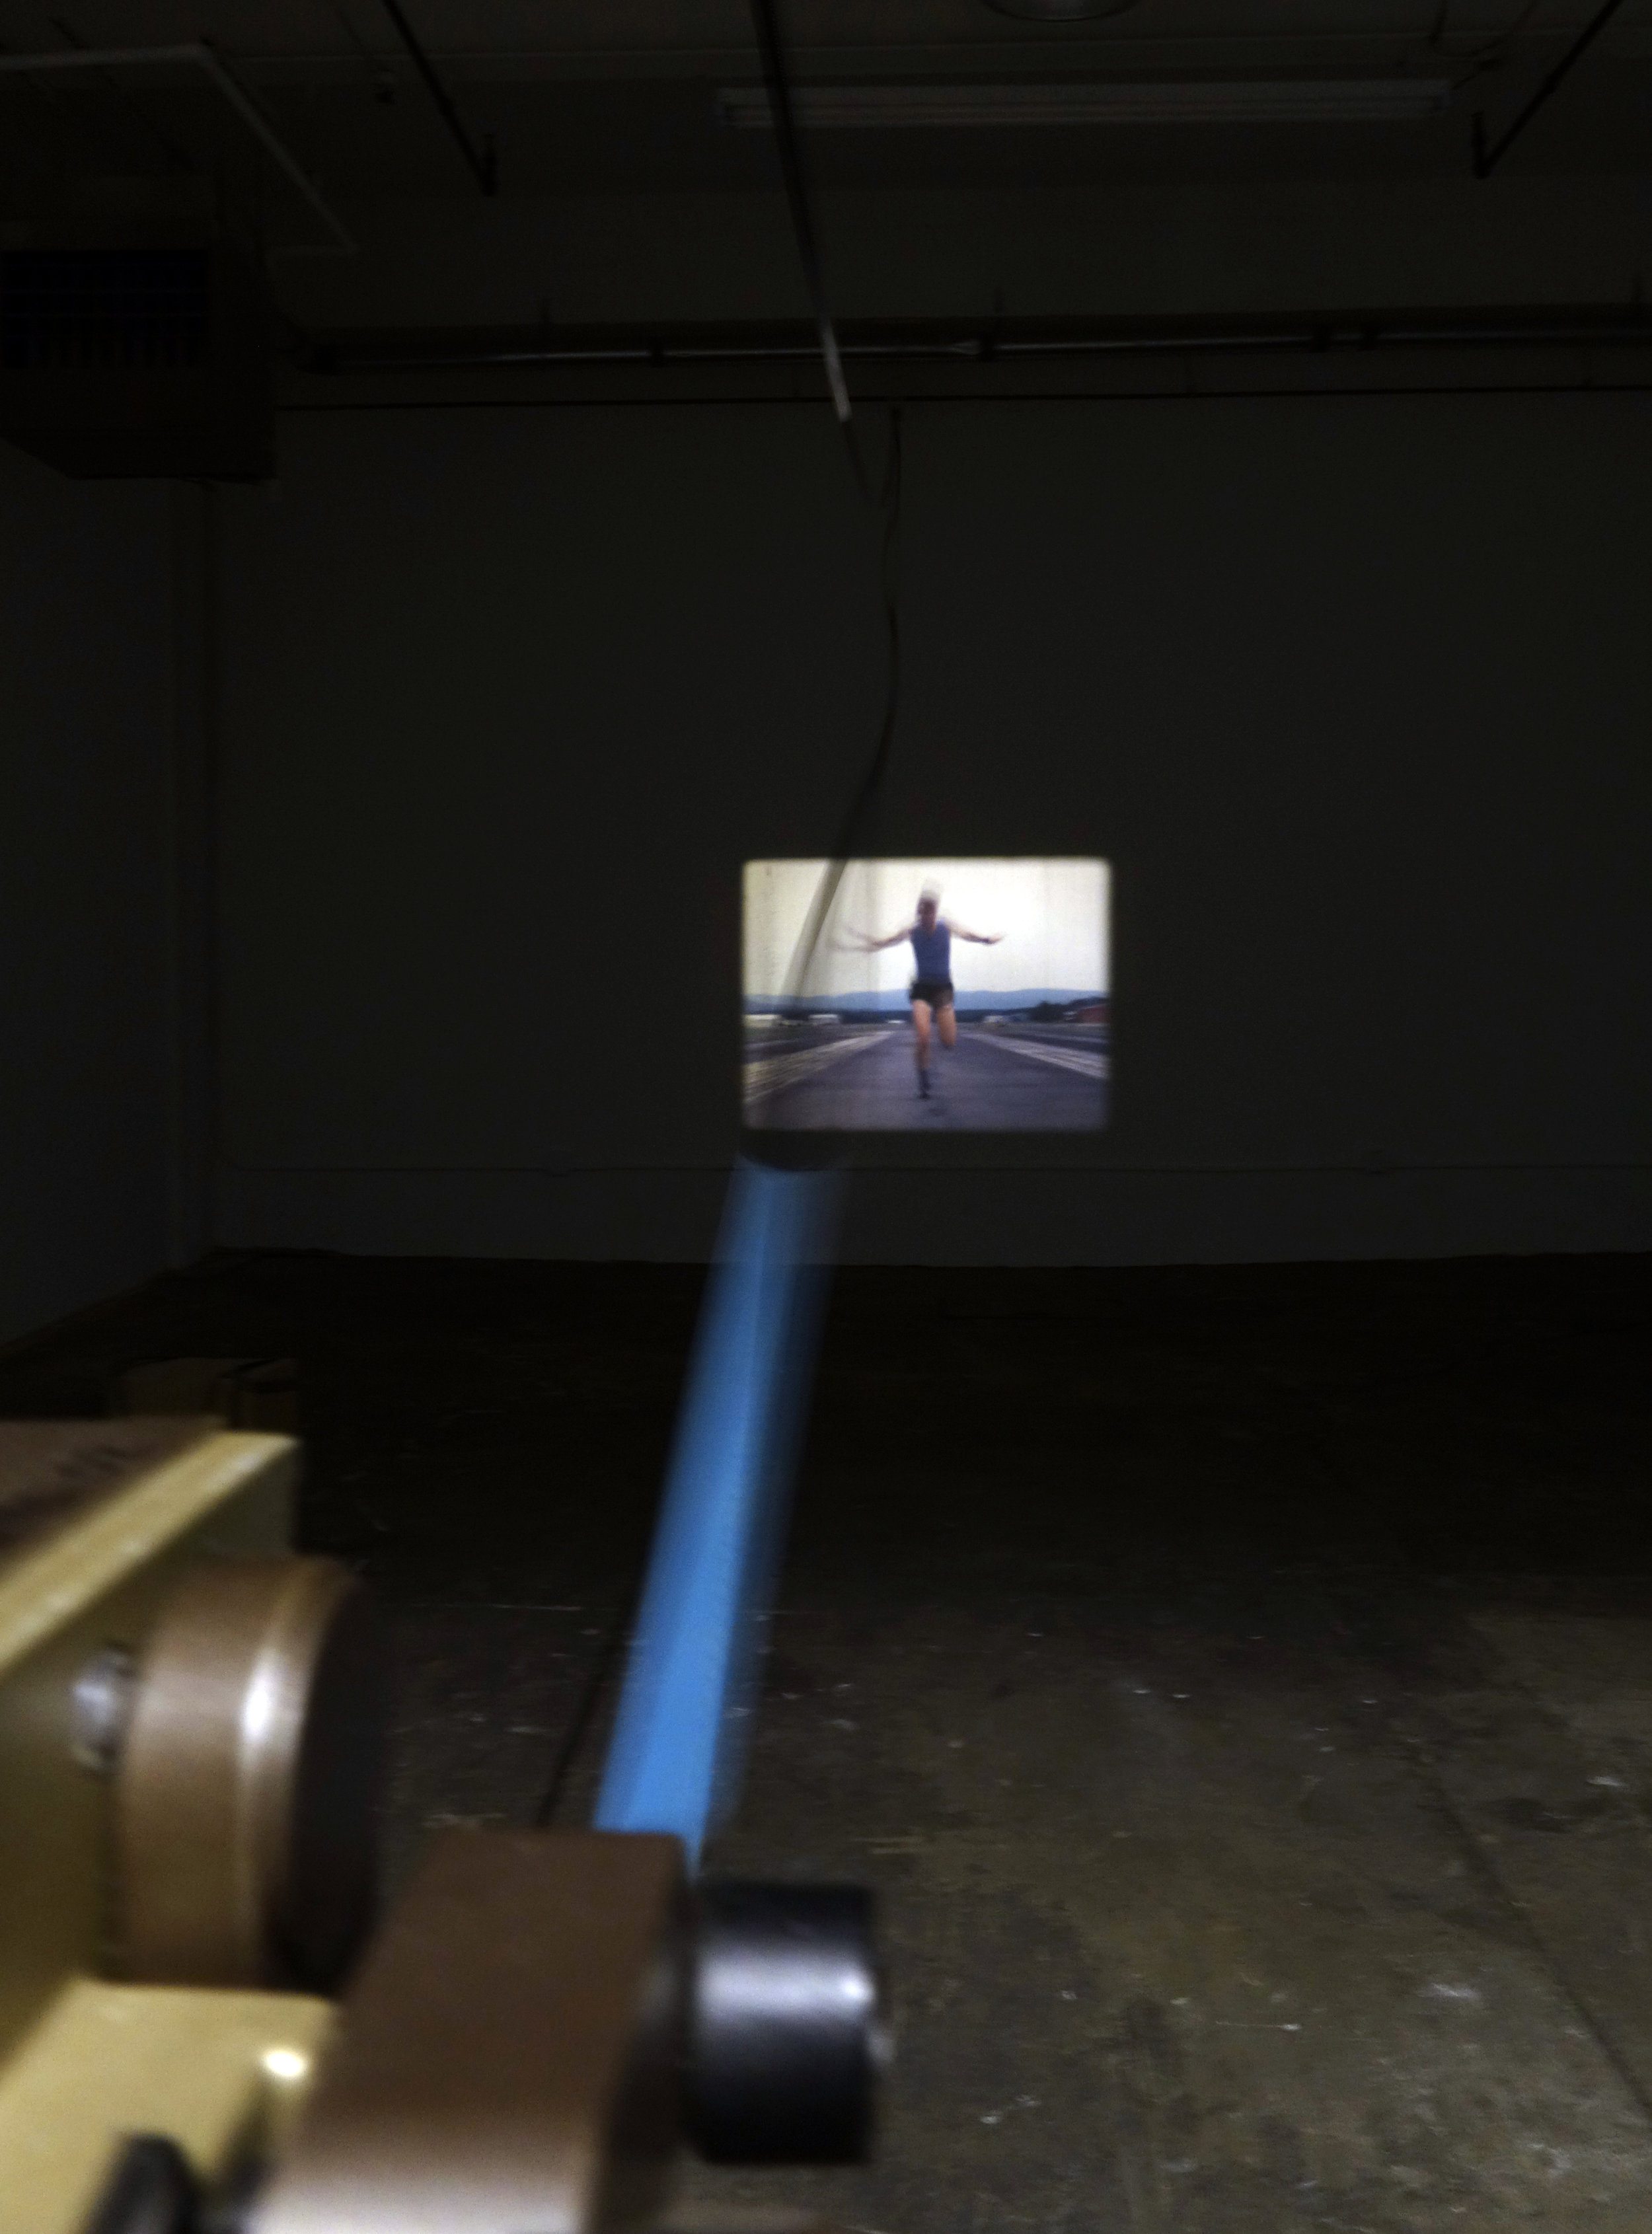 (Installation view 1) Untitled. 16mm film, projector, earth, wood. Approximately 75 x 20 x 5 feet. Duration approximately 4 minutes. 2019.    A 151 foot 16mm video loop of athlete Austen Dalquist running 5000' foot Runway Bravo at Mena Intermountain Airport. The video is a single shot, such that the duration and distance of the run are articulated by the celluloid film in real time.